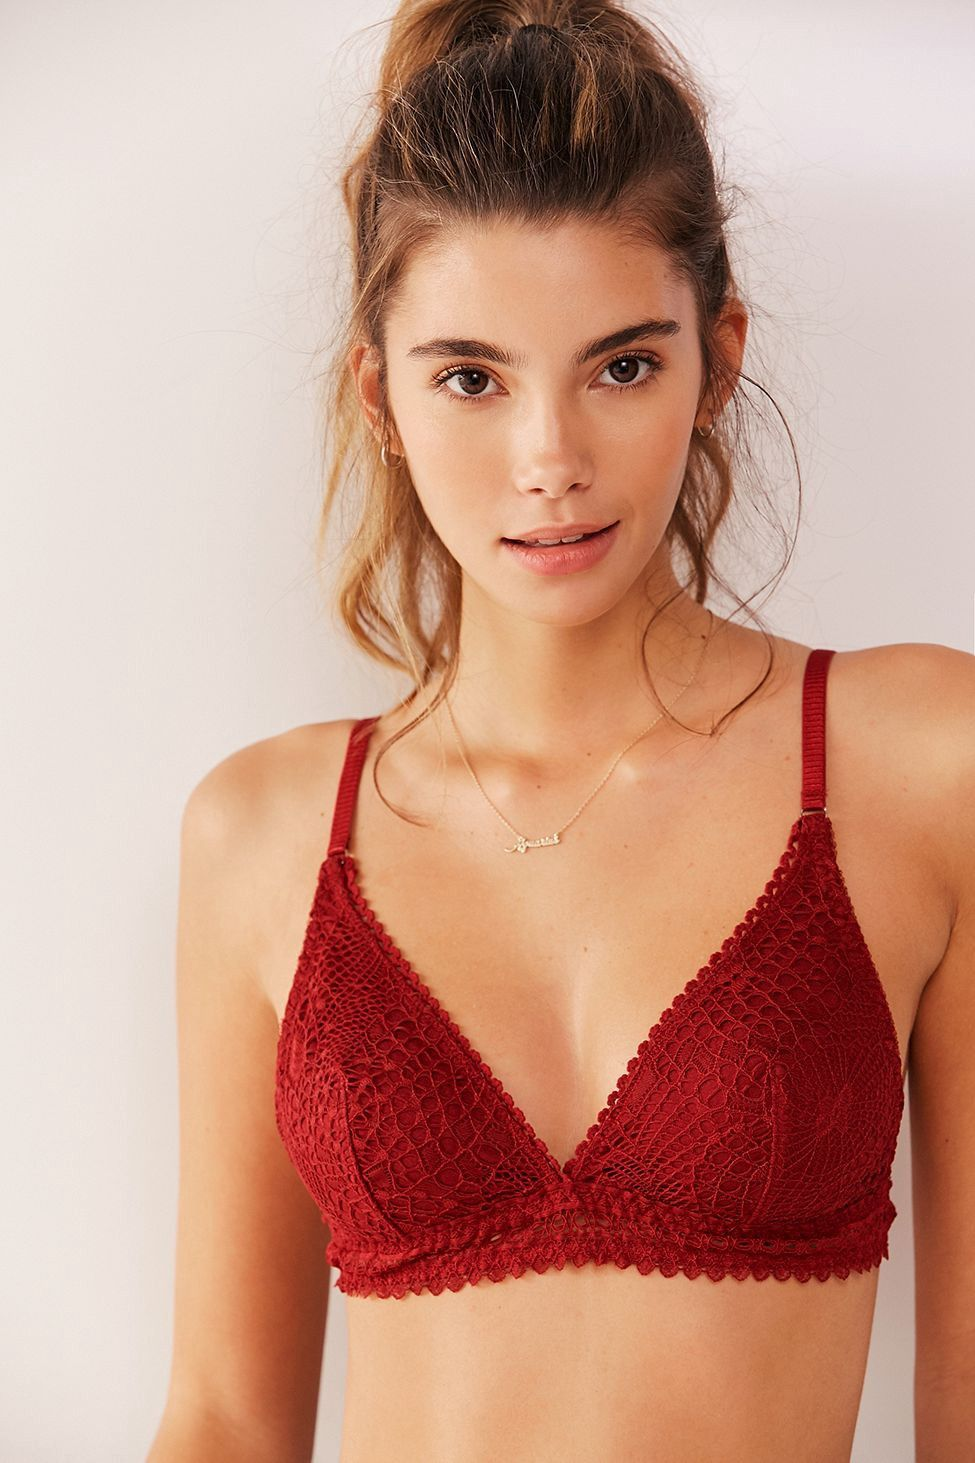 941db1d86 Urban Outfitters Out From Under Lexie Crochet Triangle Bralette - Crimson  Xl  urbanoutfitters